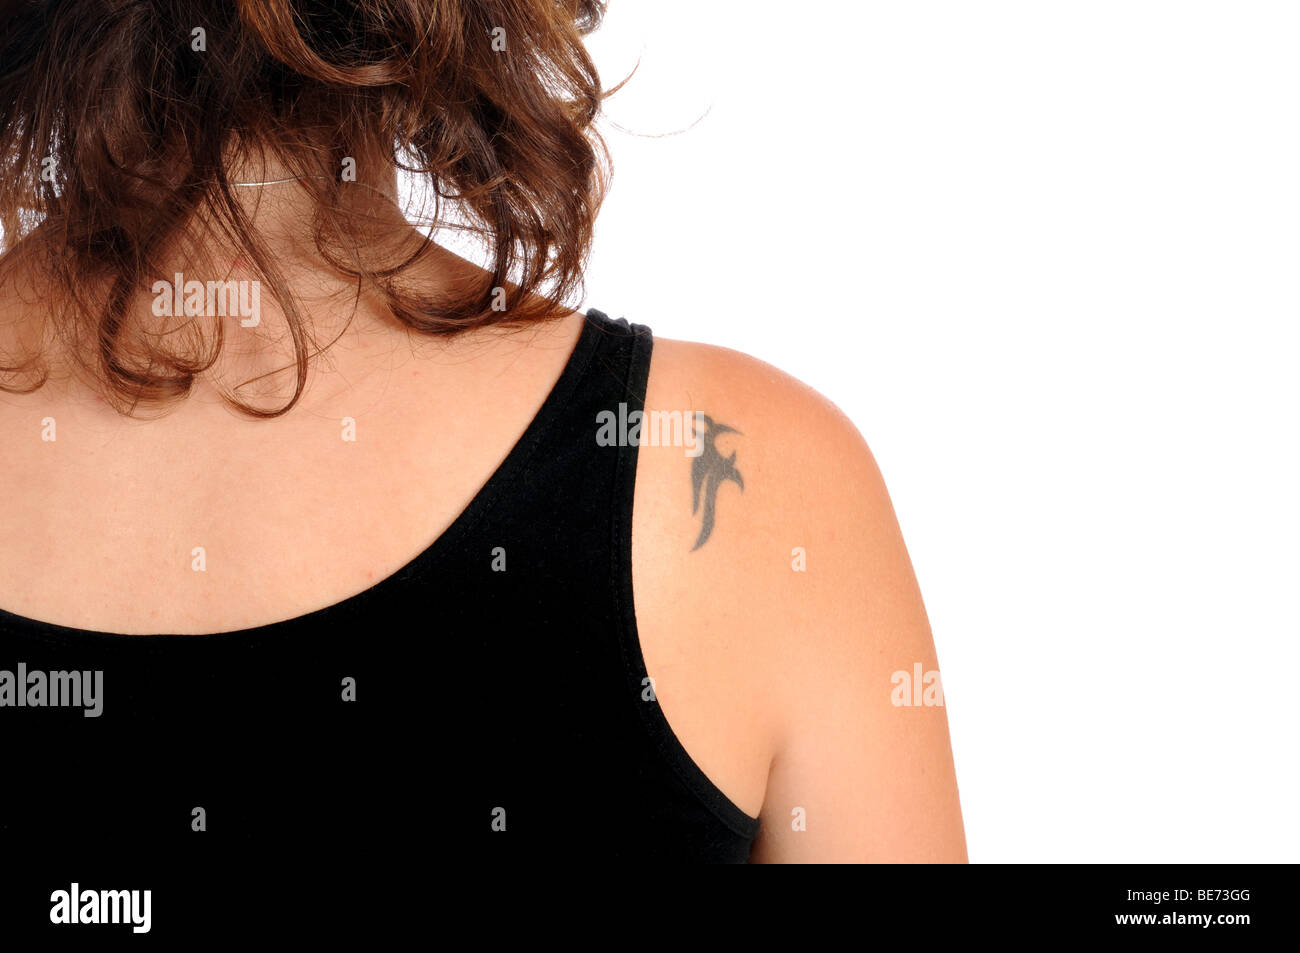 Young woman with a small tattoo in her shoulder Stock Photo